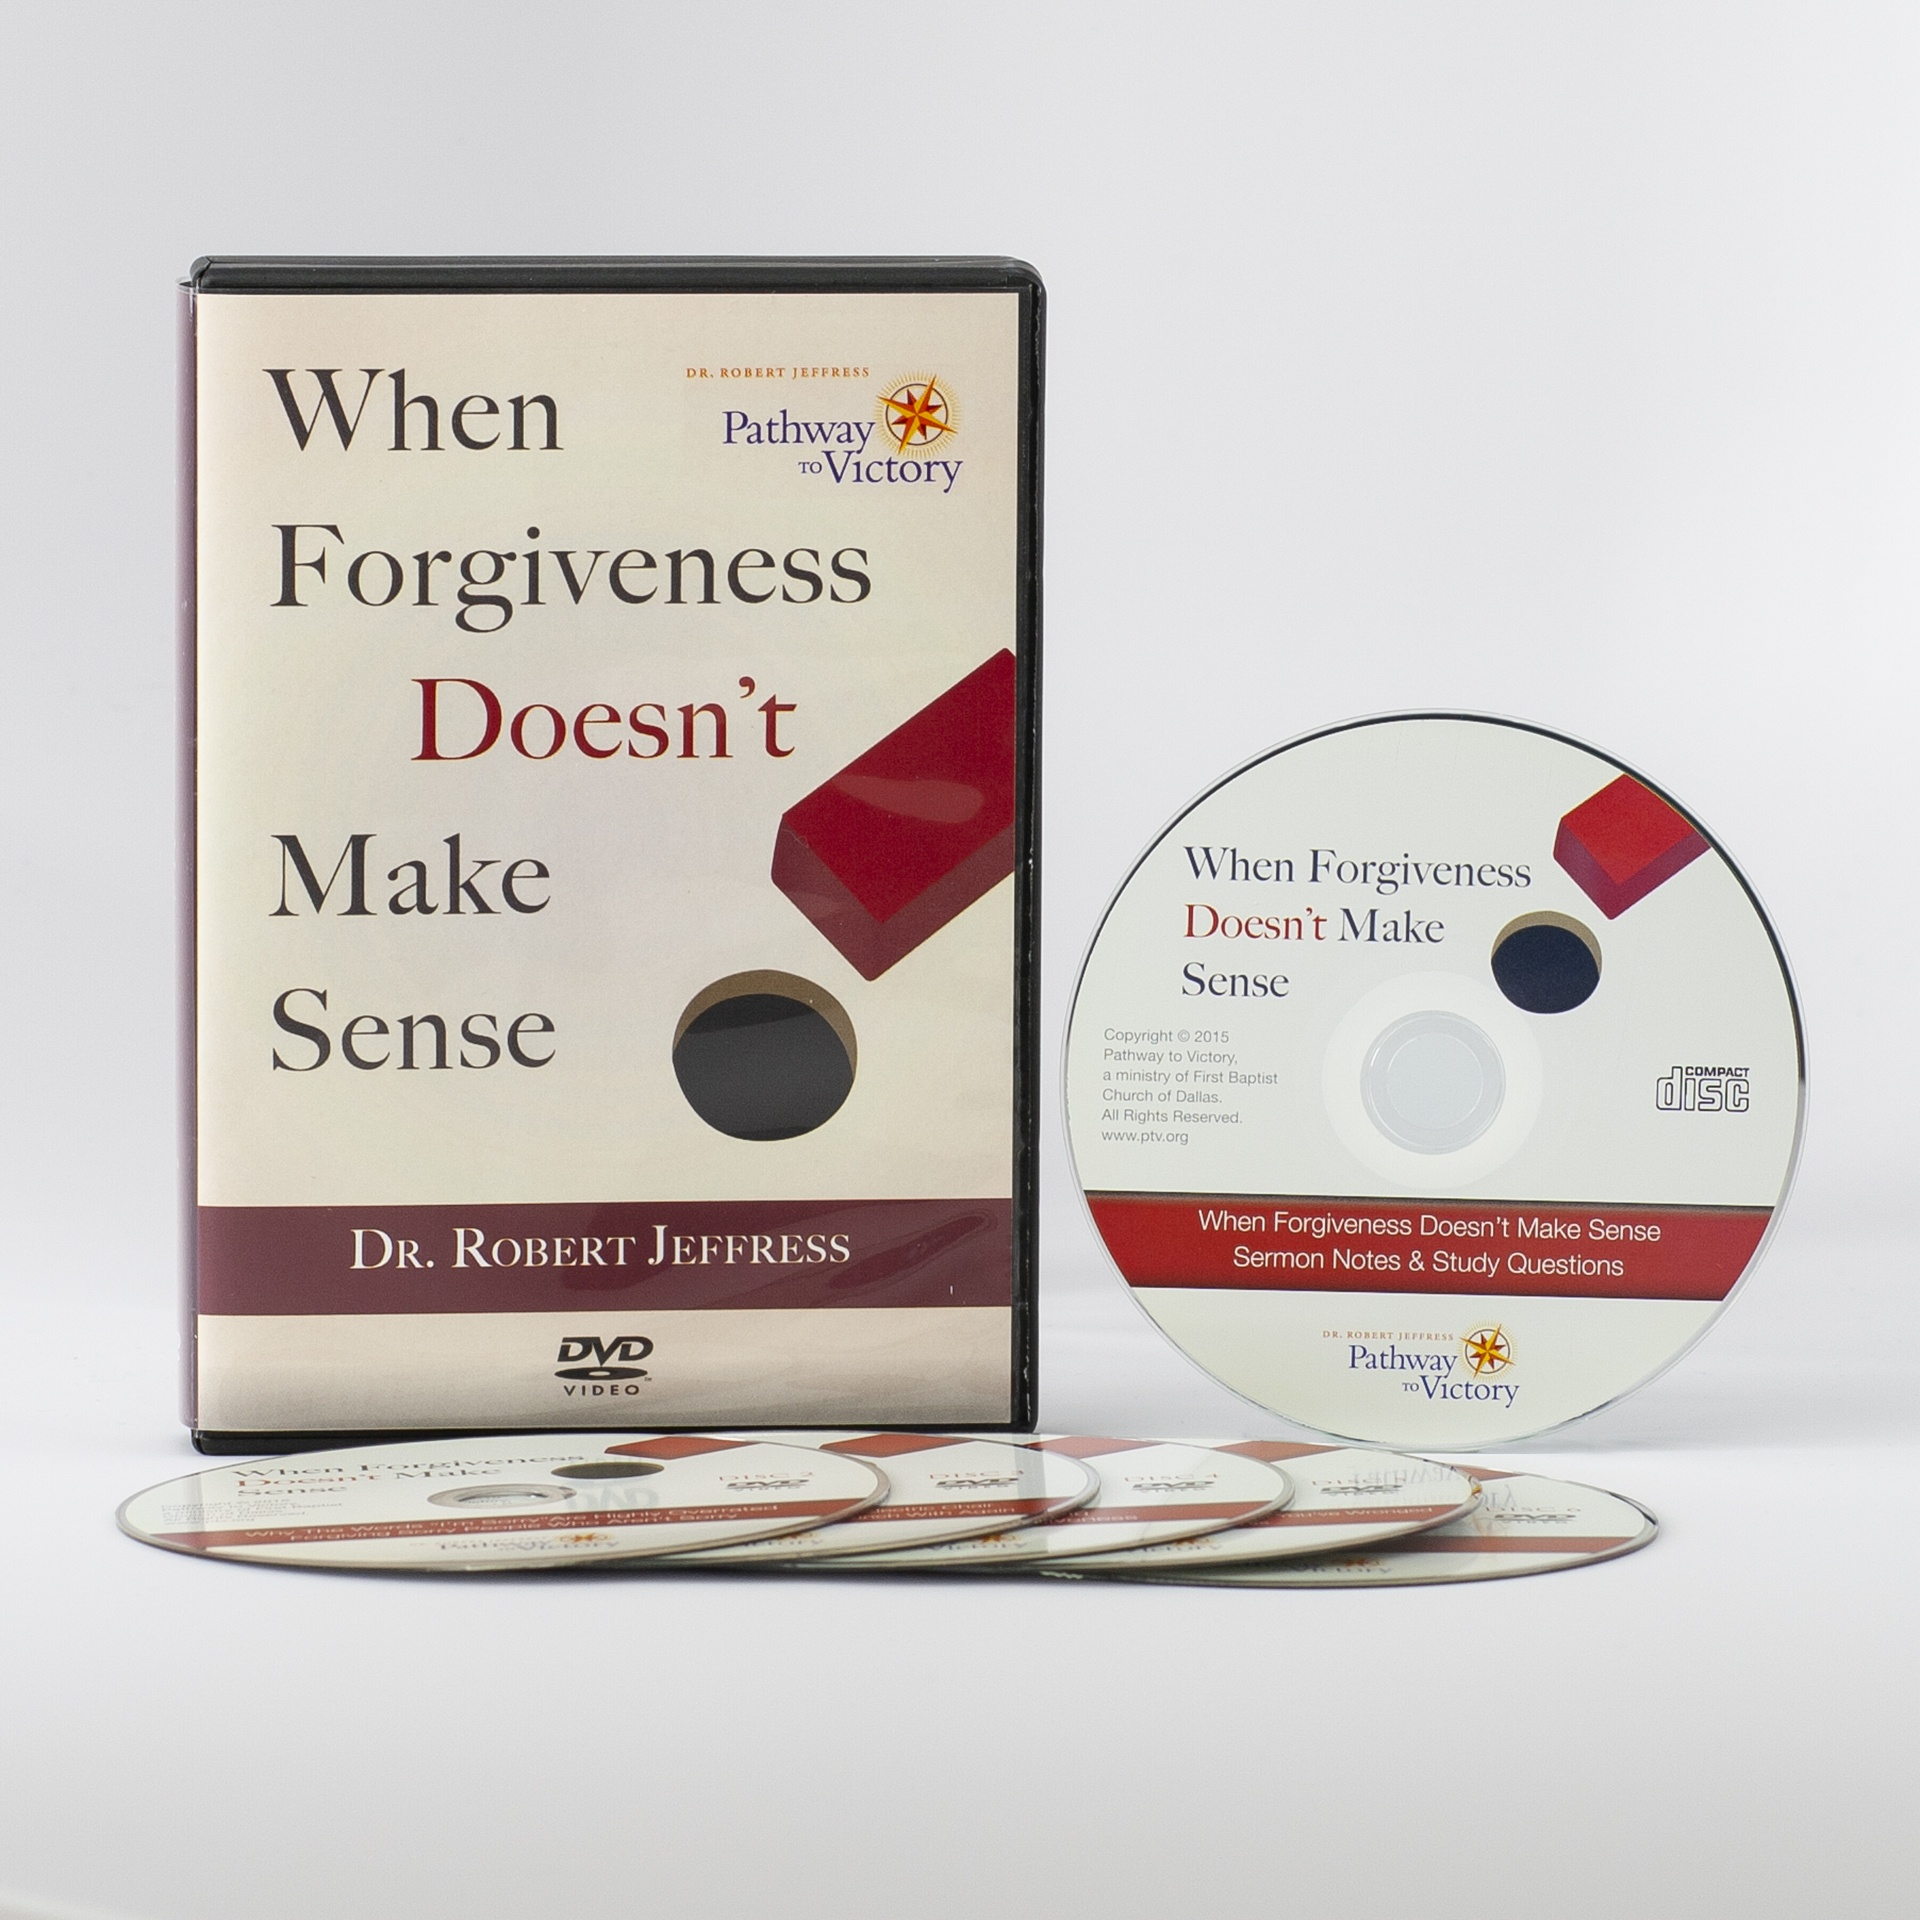 When Forgiveness Doesn't Make Sense DVD set and Sermon Notes CD